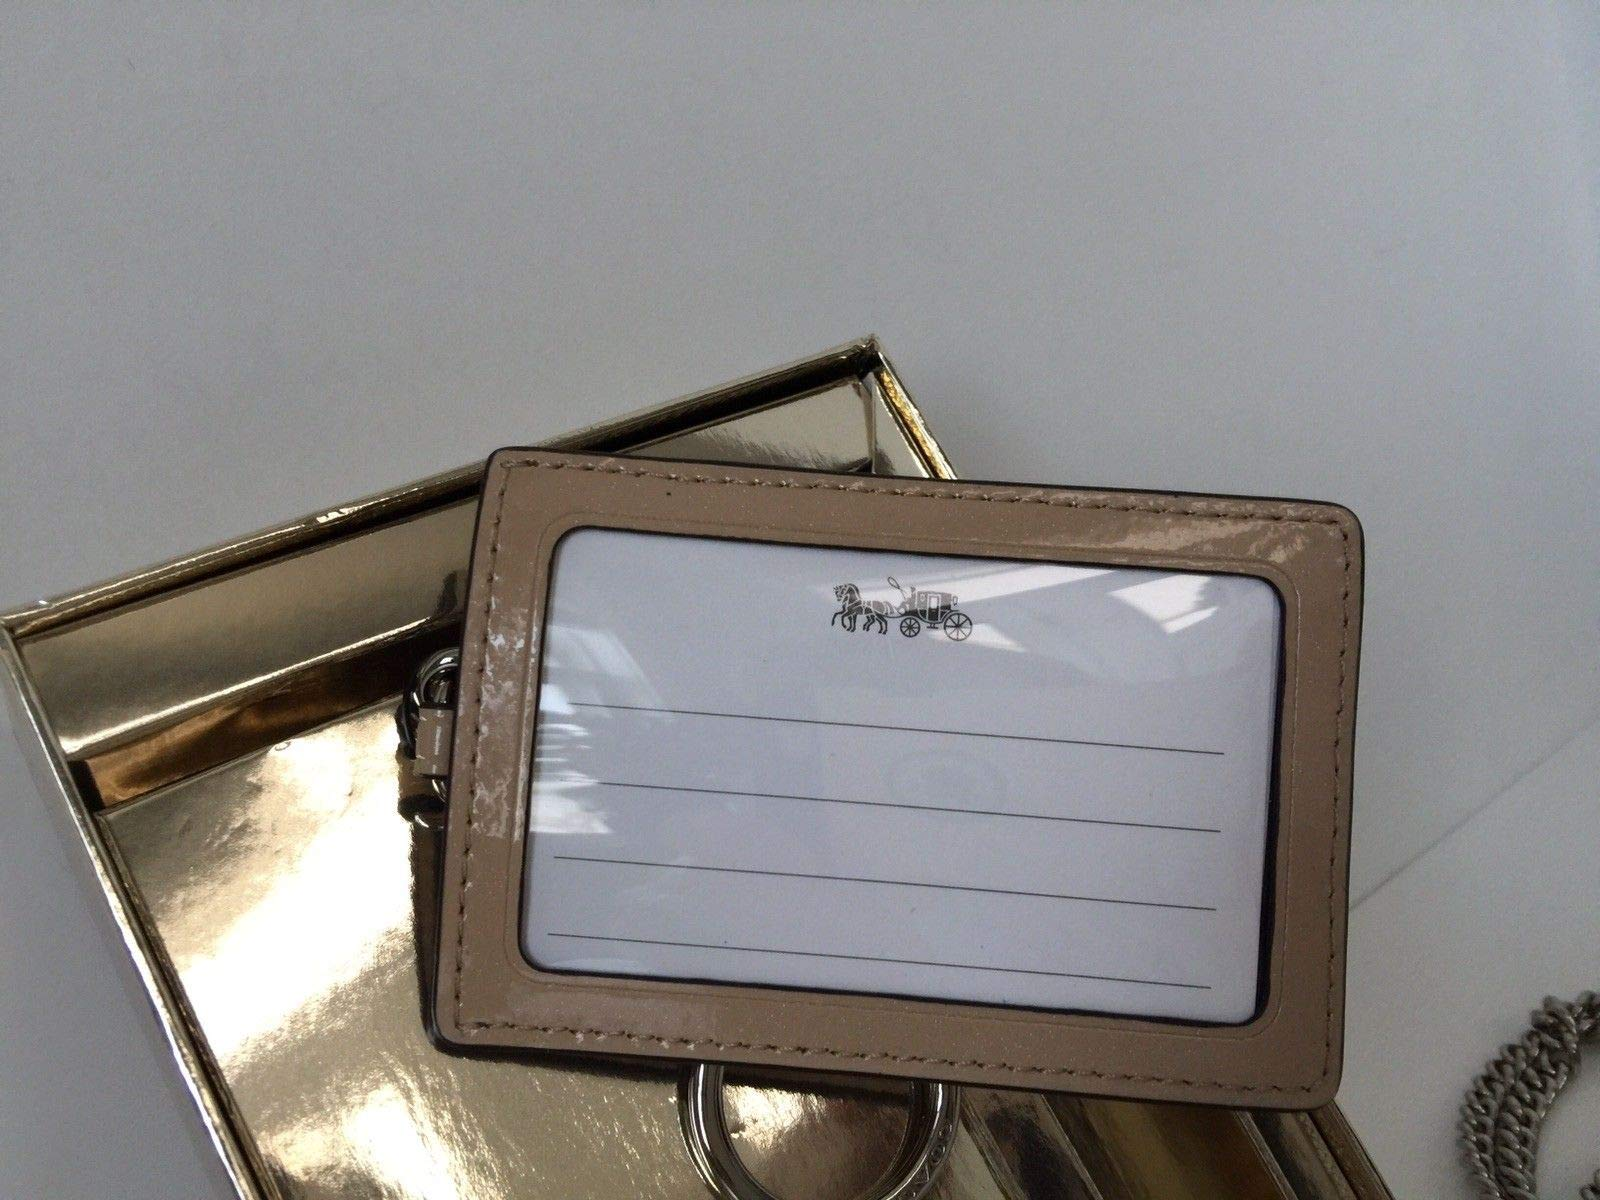 Coach Women's Boxed ID Lanyard/Card Case Set in Signature Patent Leather (Platinum/Silver) by COACH (Image #5)